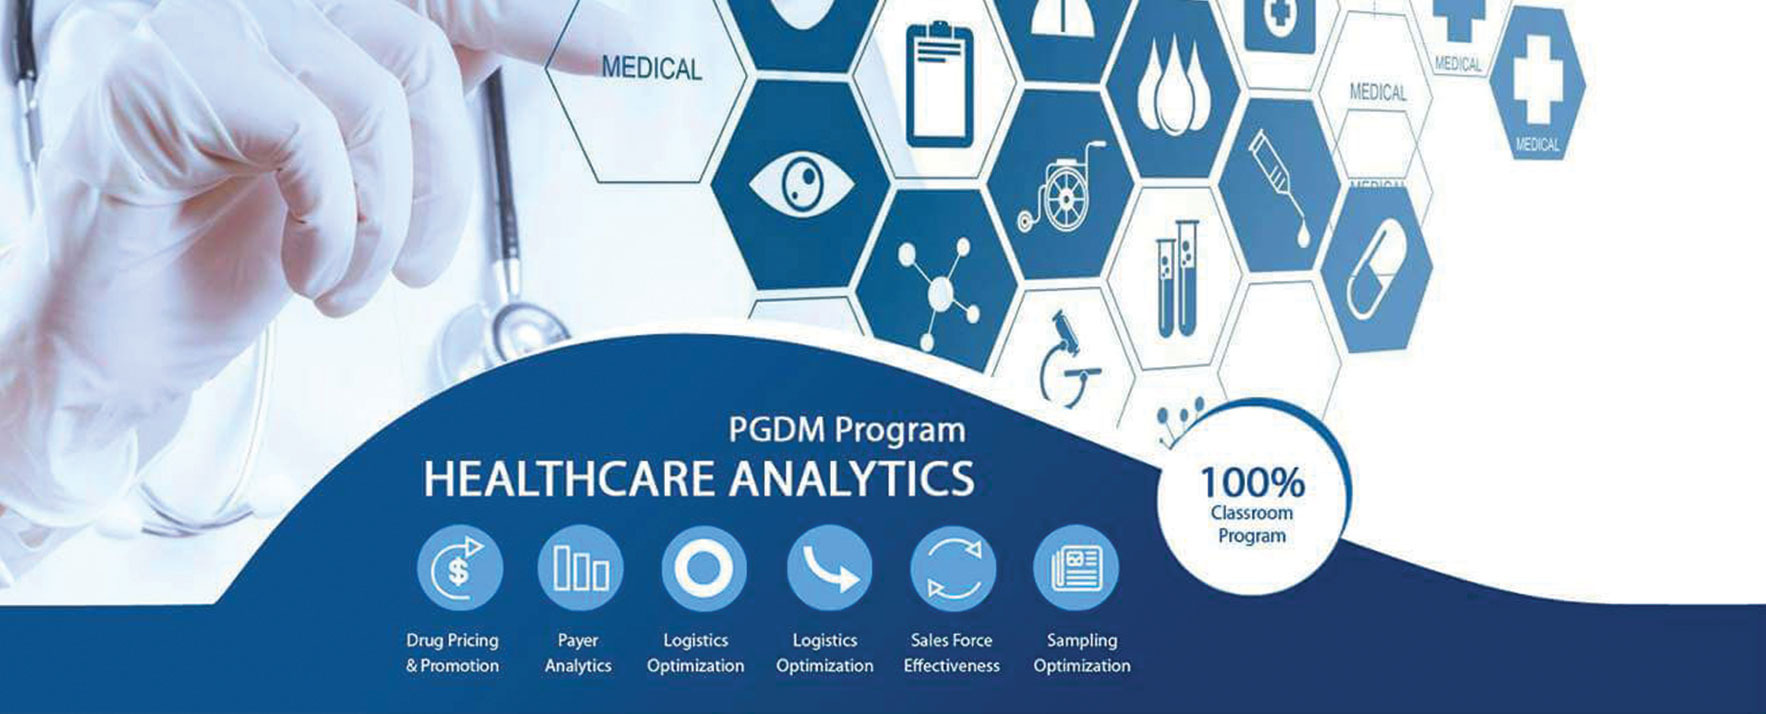 PGDM health care analytics